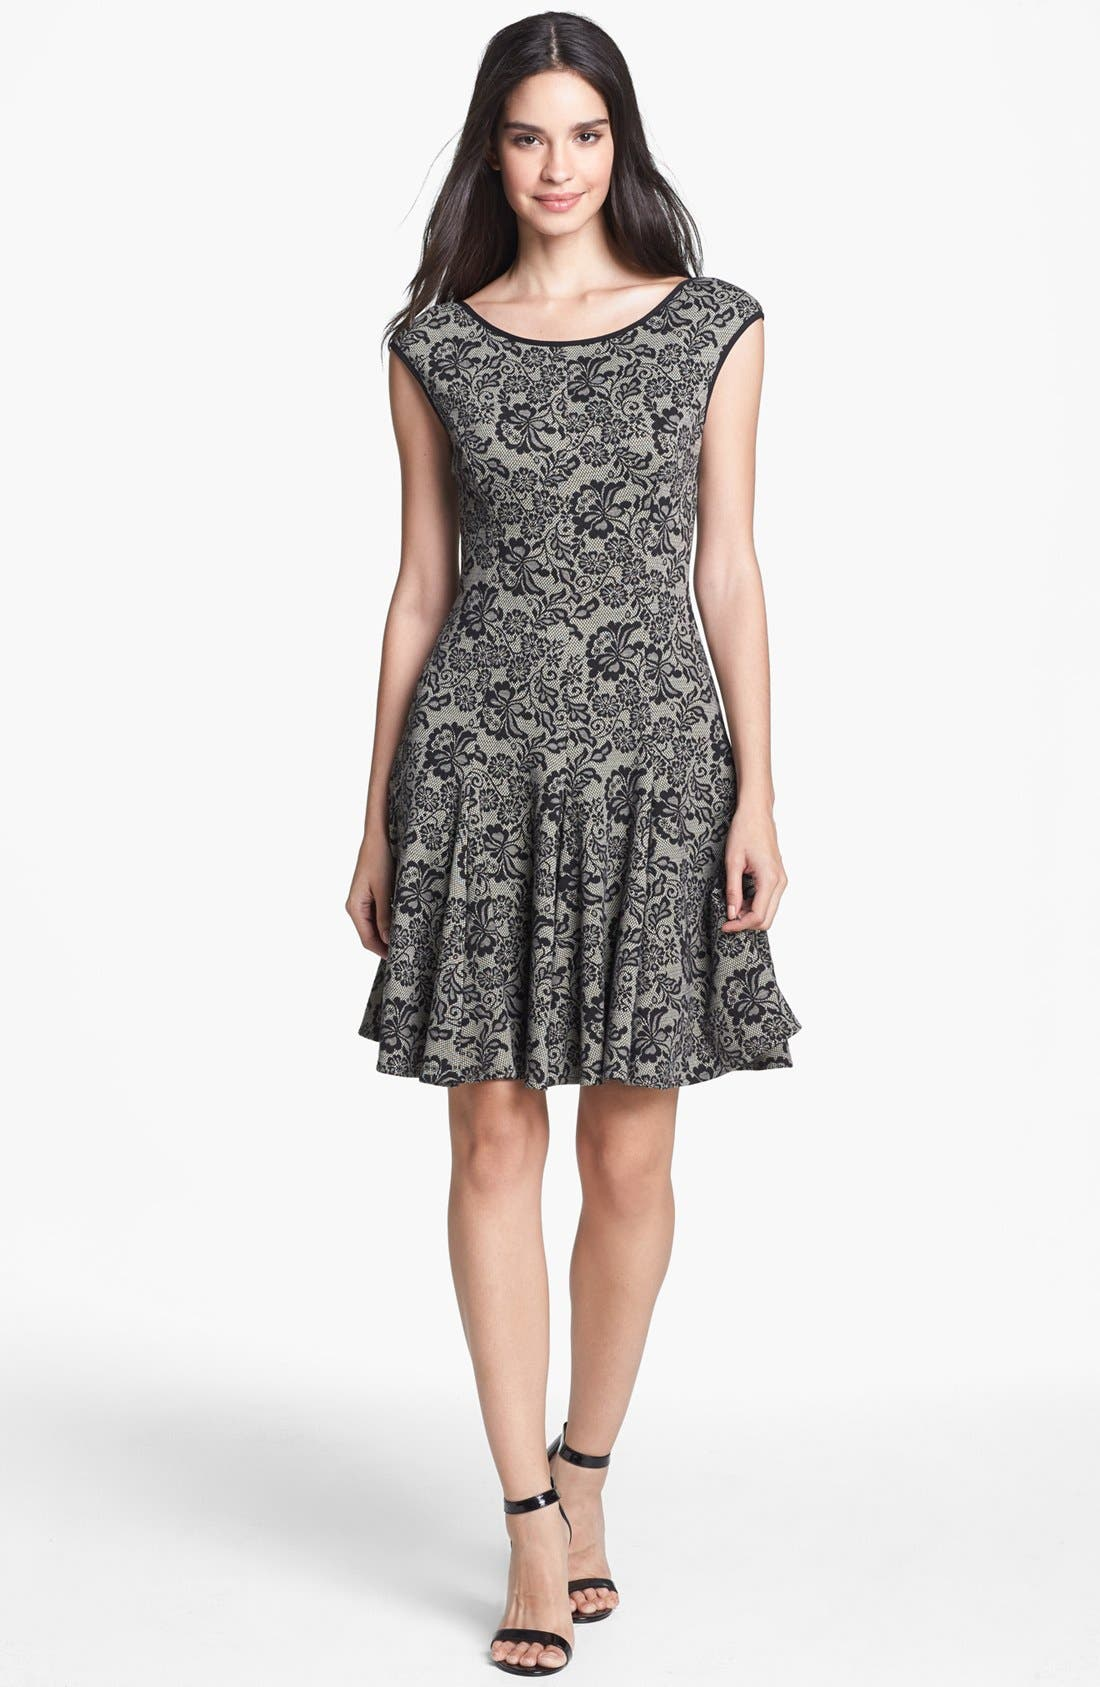 Alternate Image 1 Selected - Maggy London Lace Print Jacquard Fit & Flare Dress (Petite)